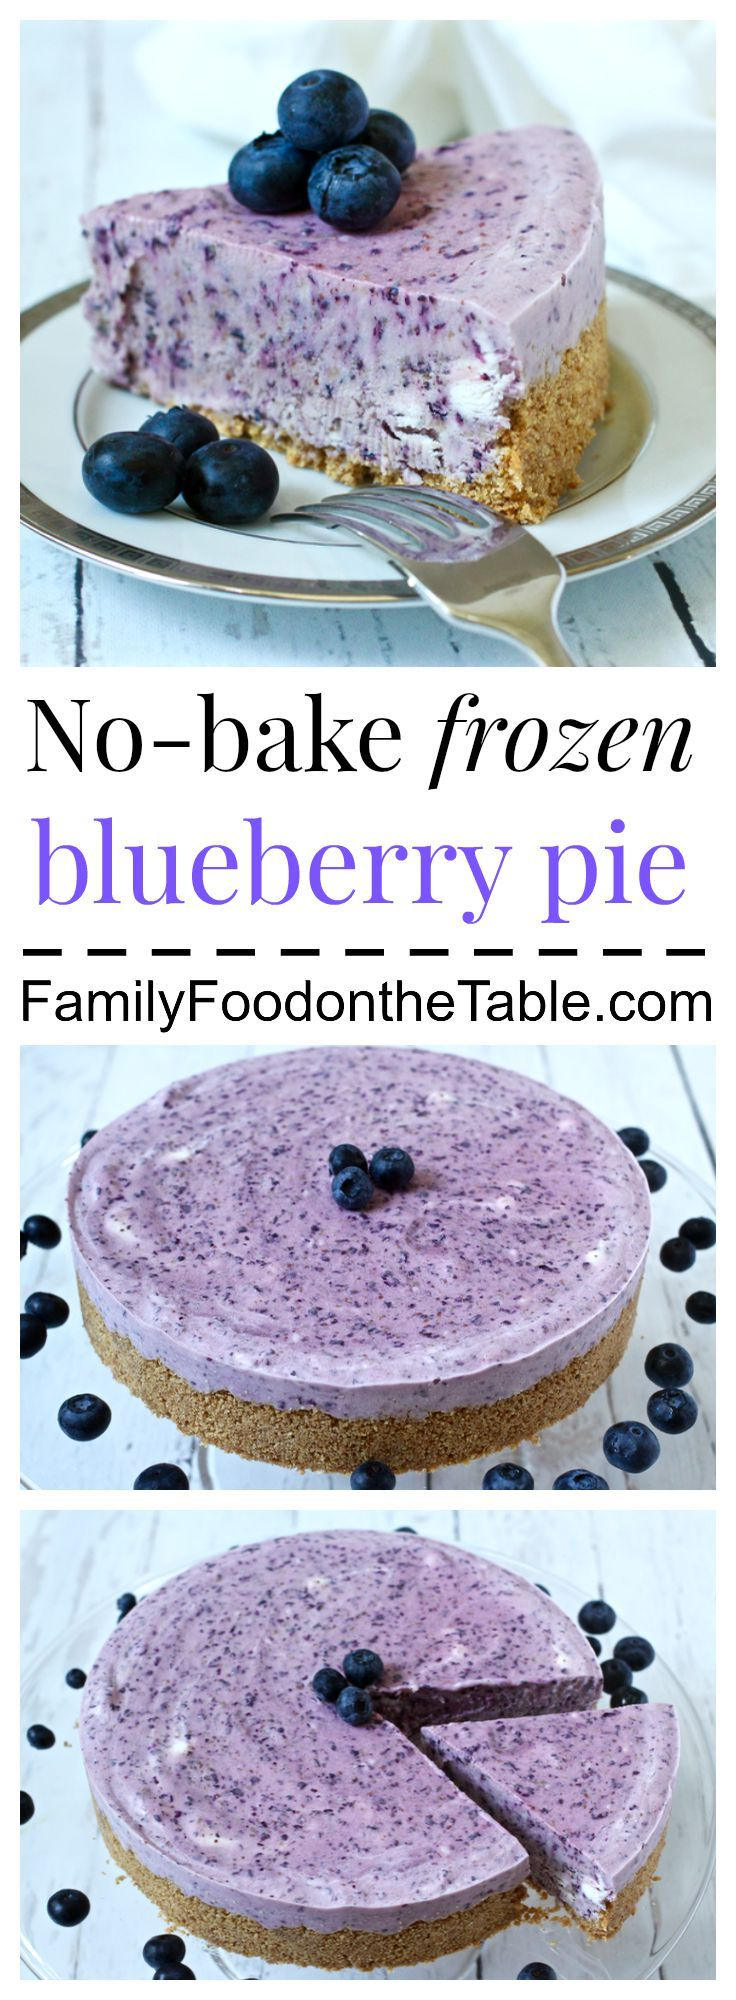 A creamy, no-bake frozen blueberry pie, perfect for summer! | FamilyFoodontheTable.com (Lemon Butter Almond Flour)